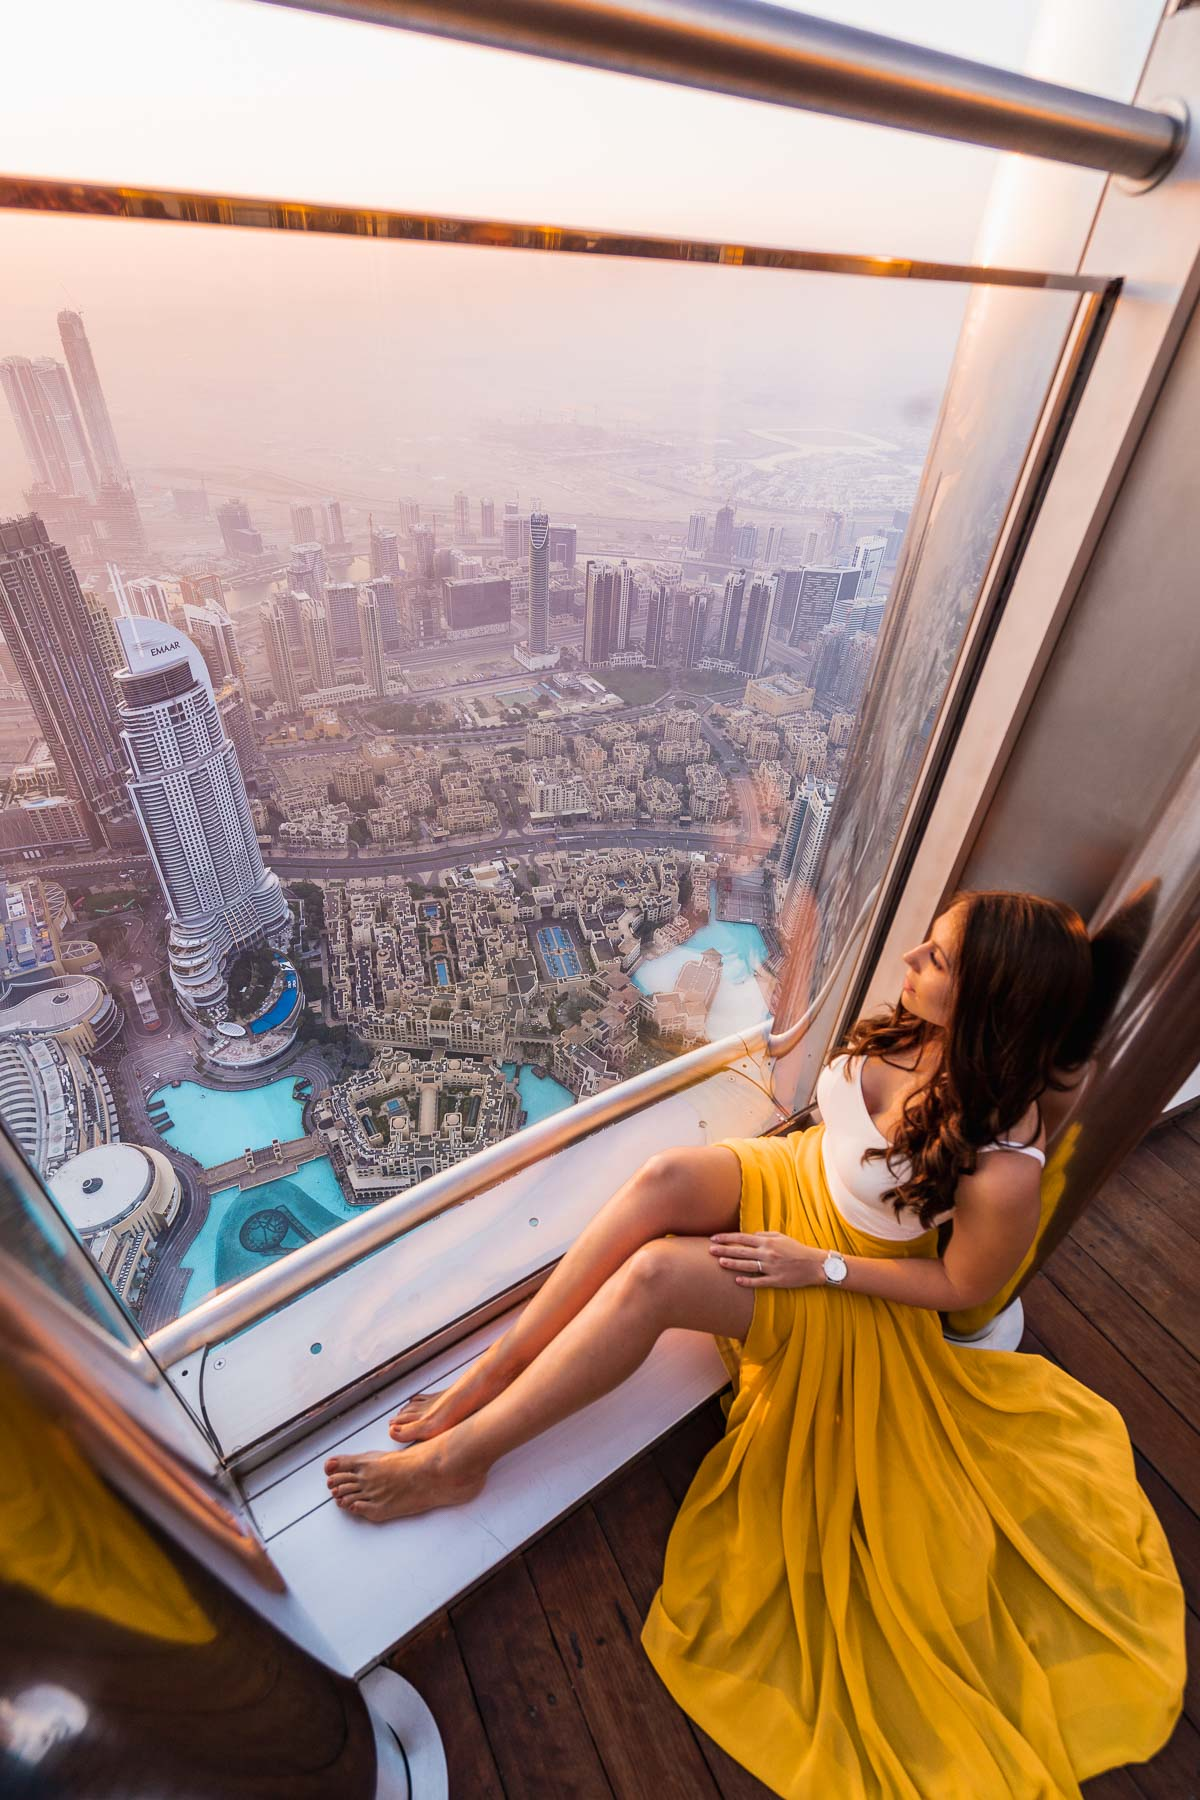 Girl in a yellow skirt sitting in front of a window in the Burj Khalifa at sunrise with the Dubai skyline in the background